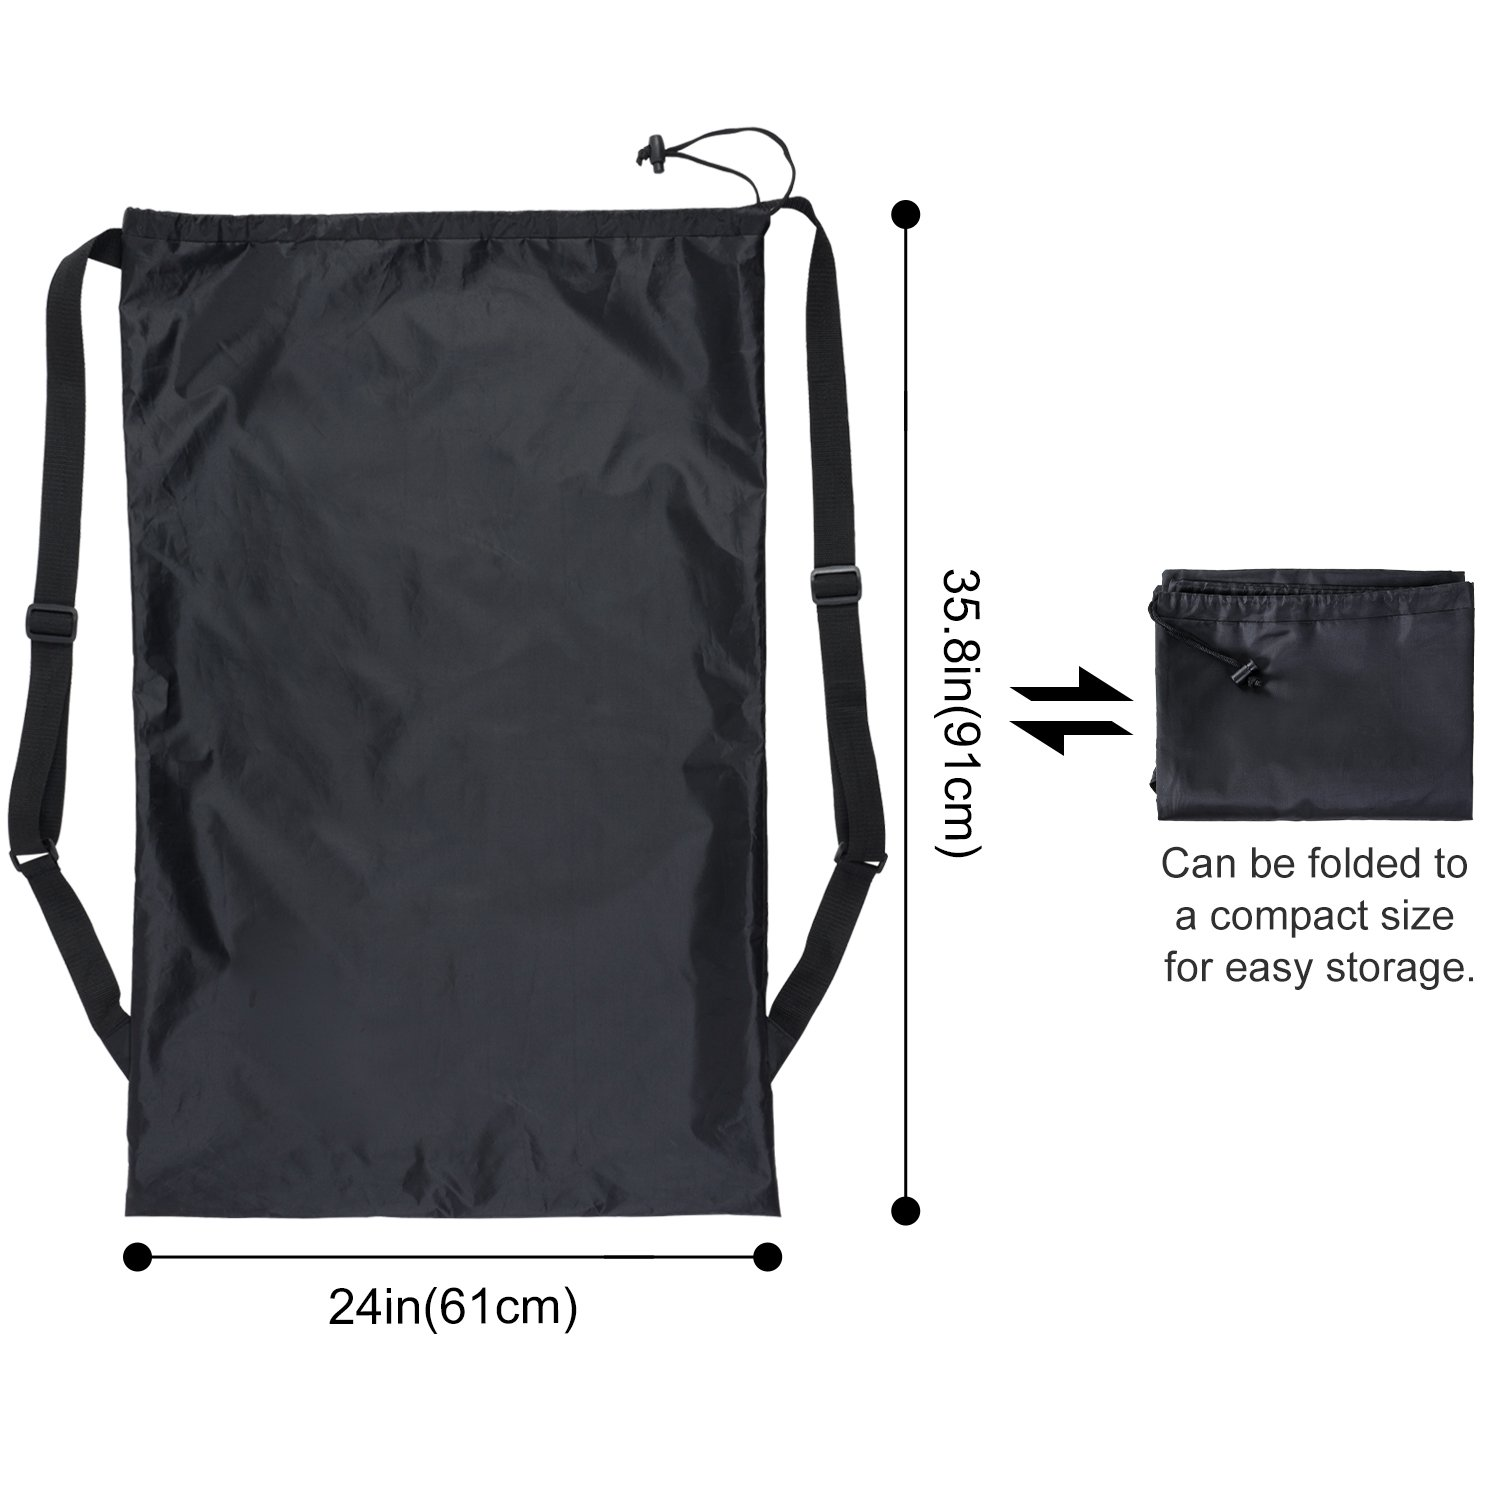 Lifewit 24'' x 36'' Laundry Backpack Bag, Heavy Duty Laundry Washing Bags with Door Hooks and 2 Adjustable Shoulder Straps for School Dormitory, Camping,Laundry Room, Outdoor Travel, Black by Lifewit (Image #4)